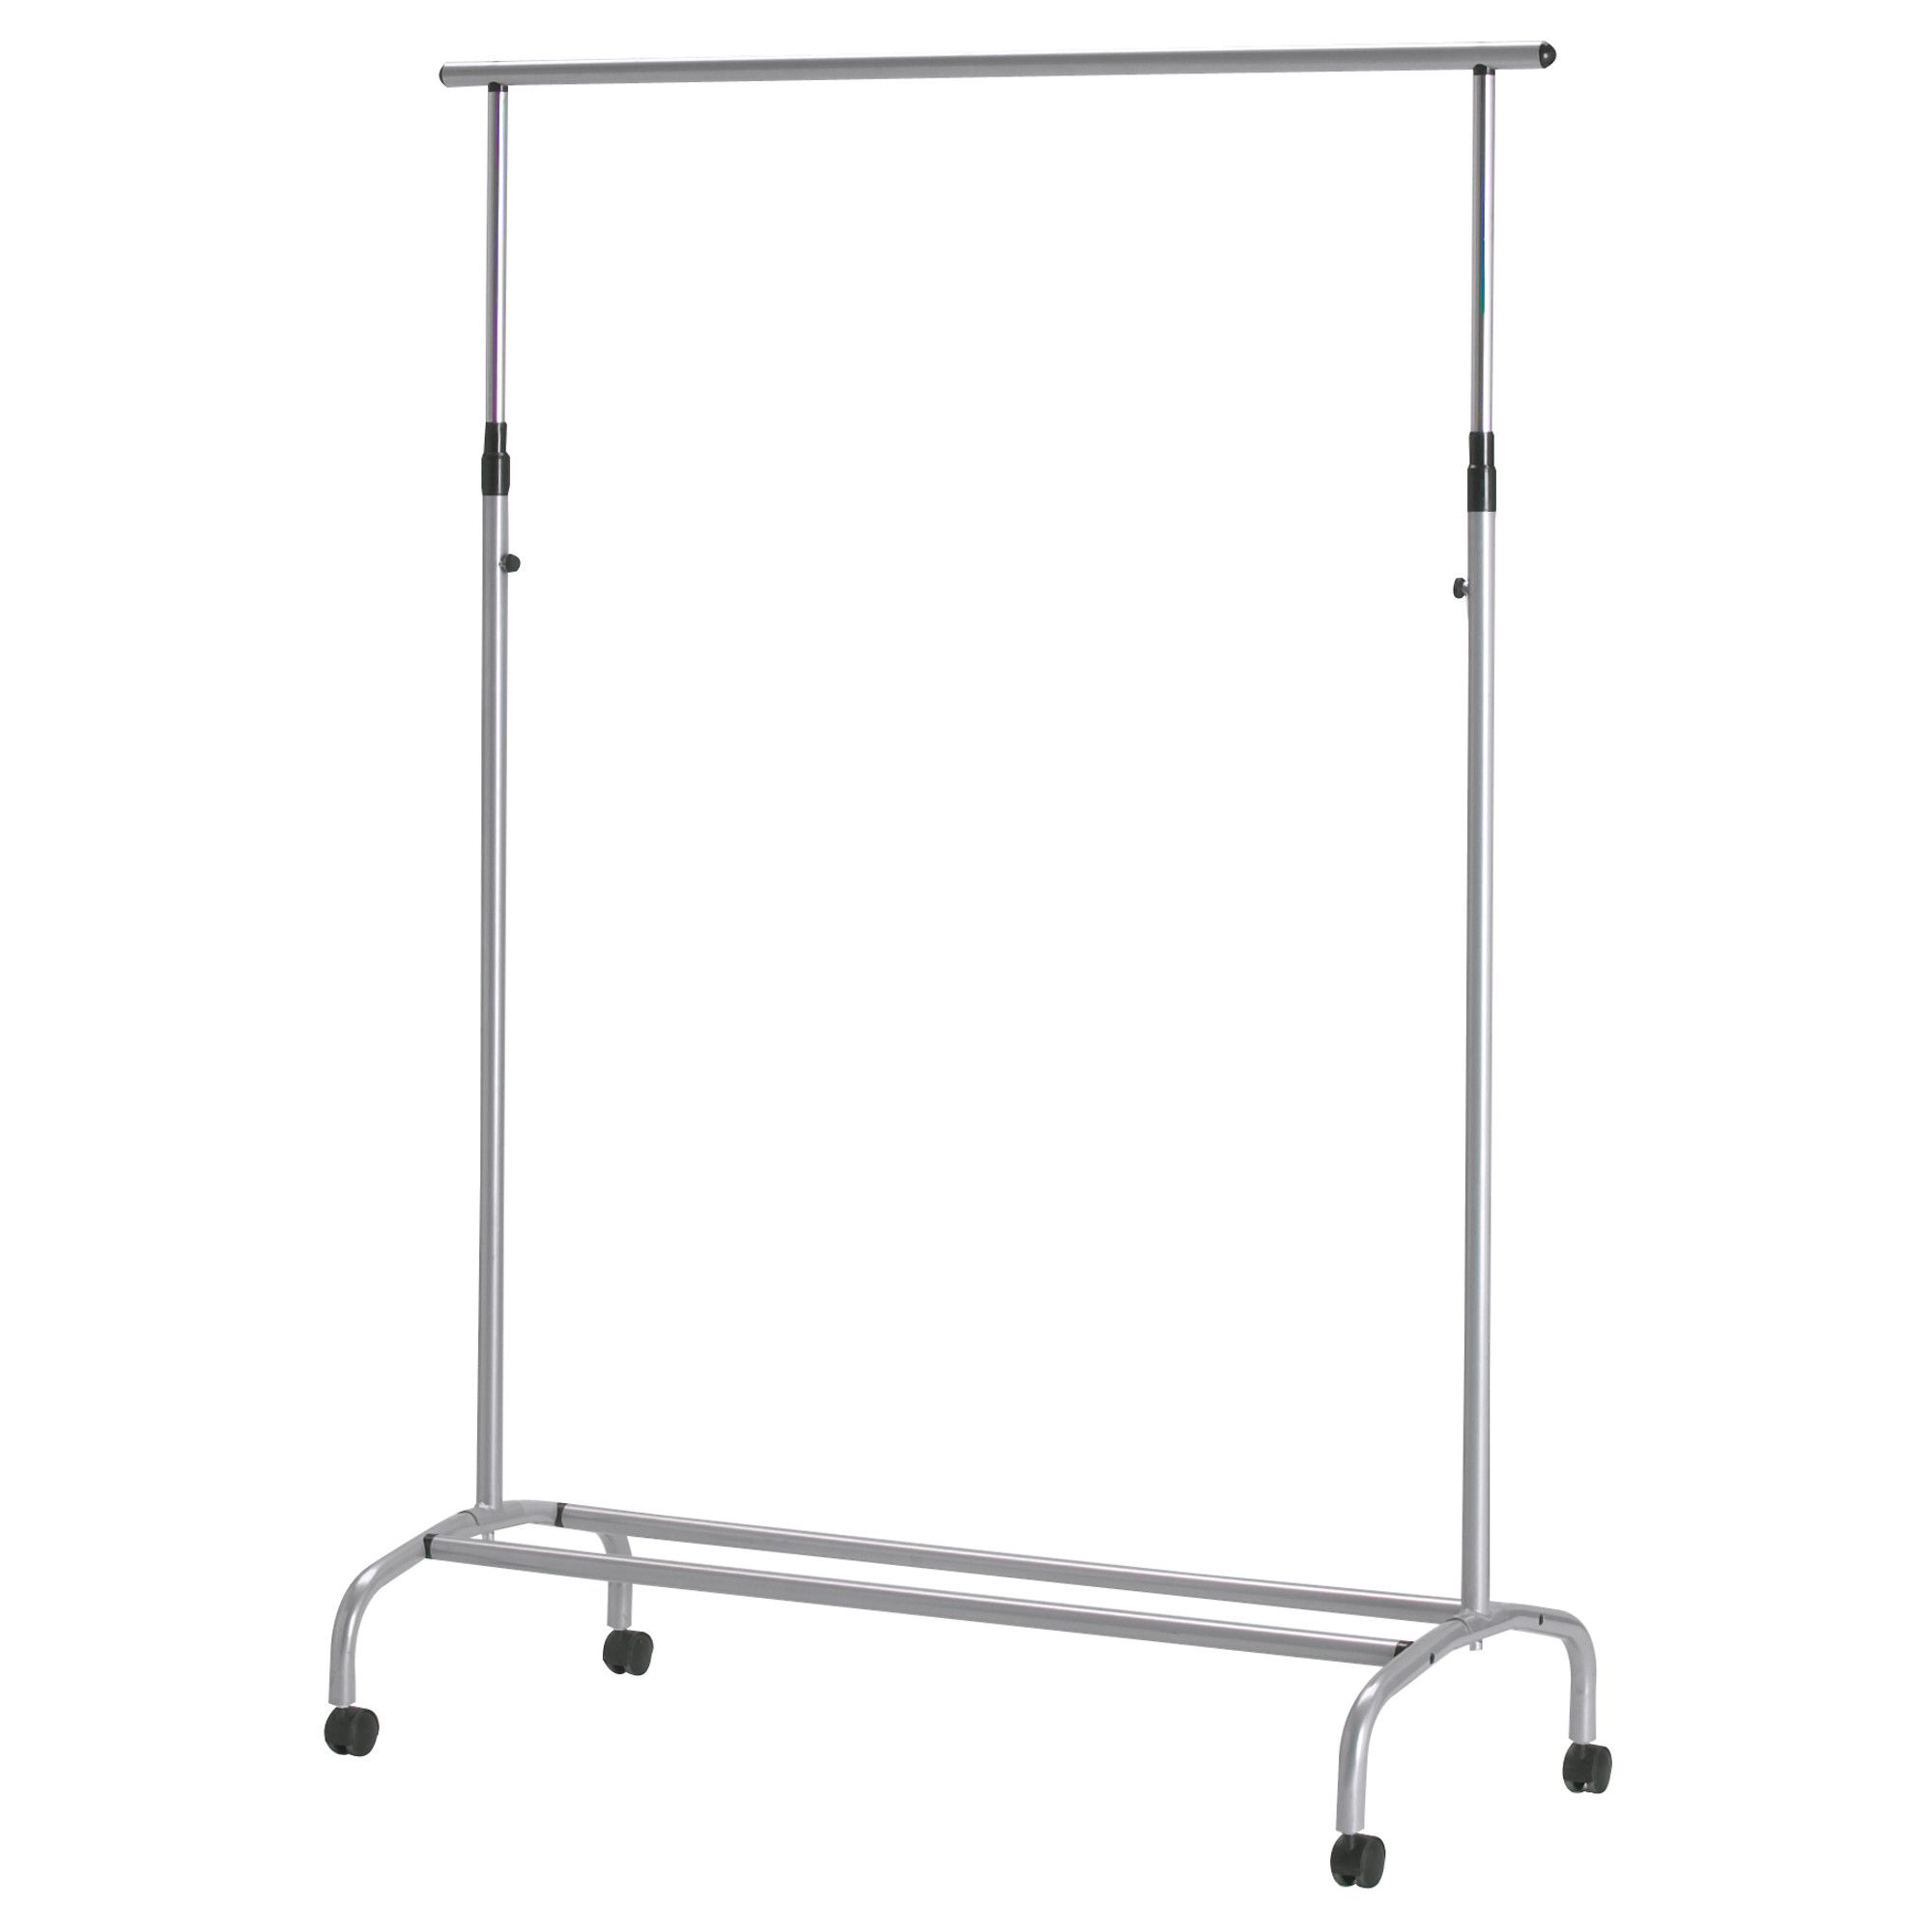 rigga clothes rack silver color article number you can adjust